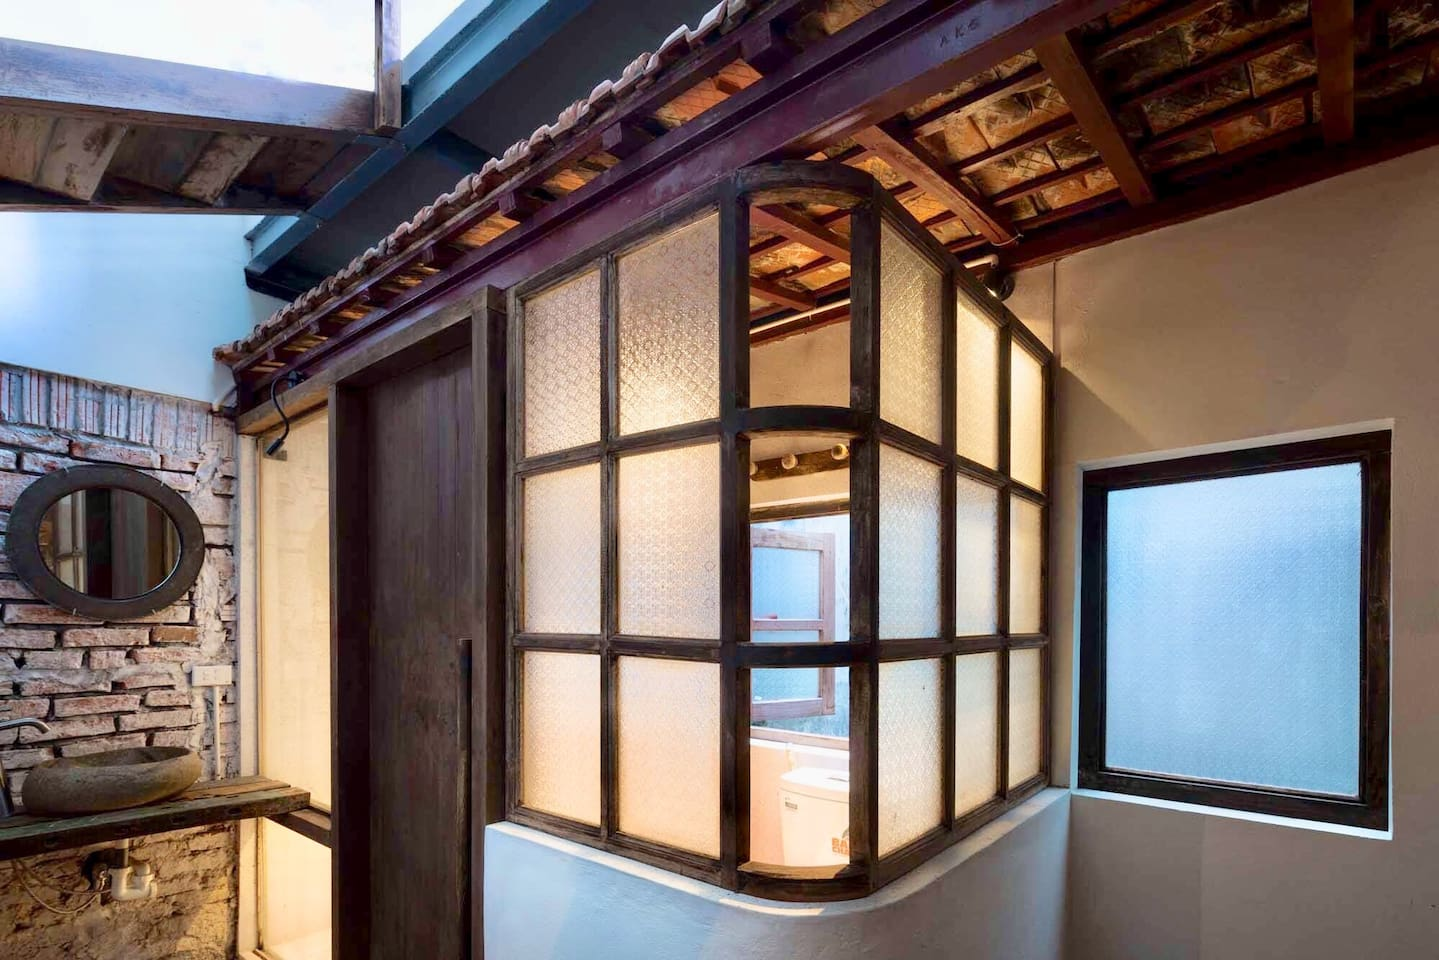 Welcome you to Aimee House - The ancient house inside the heart of Hanoi